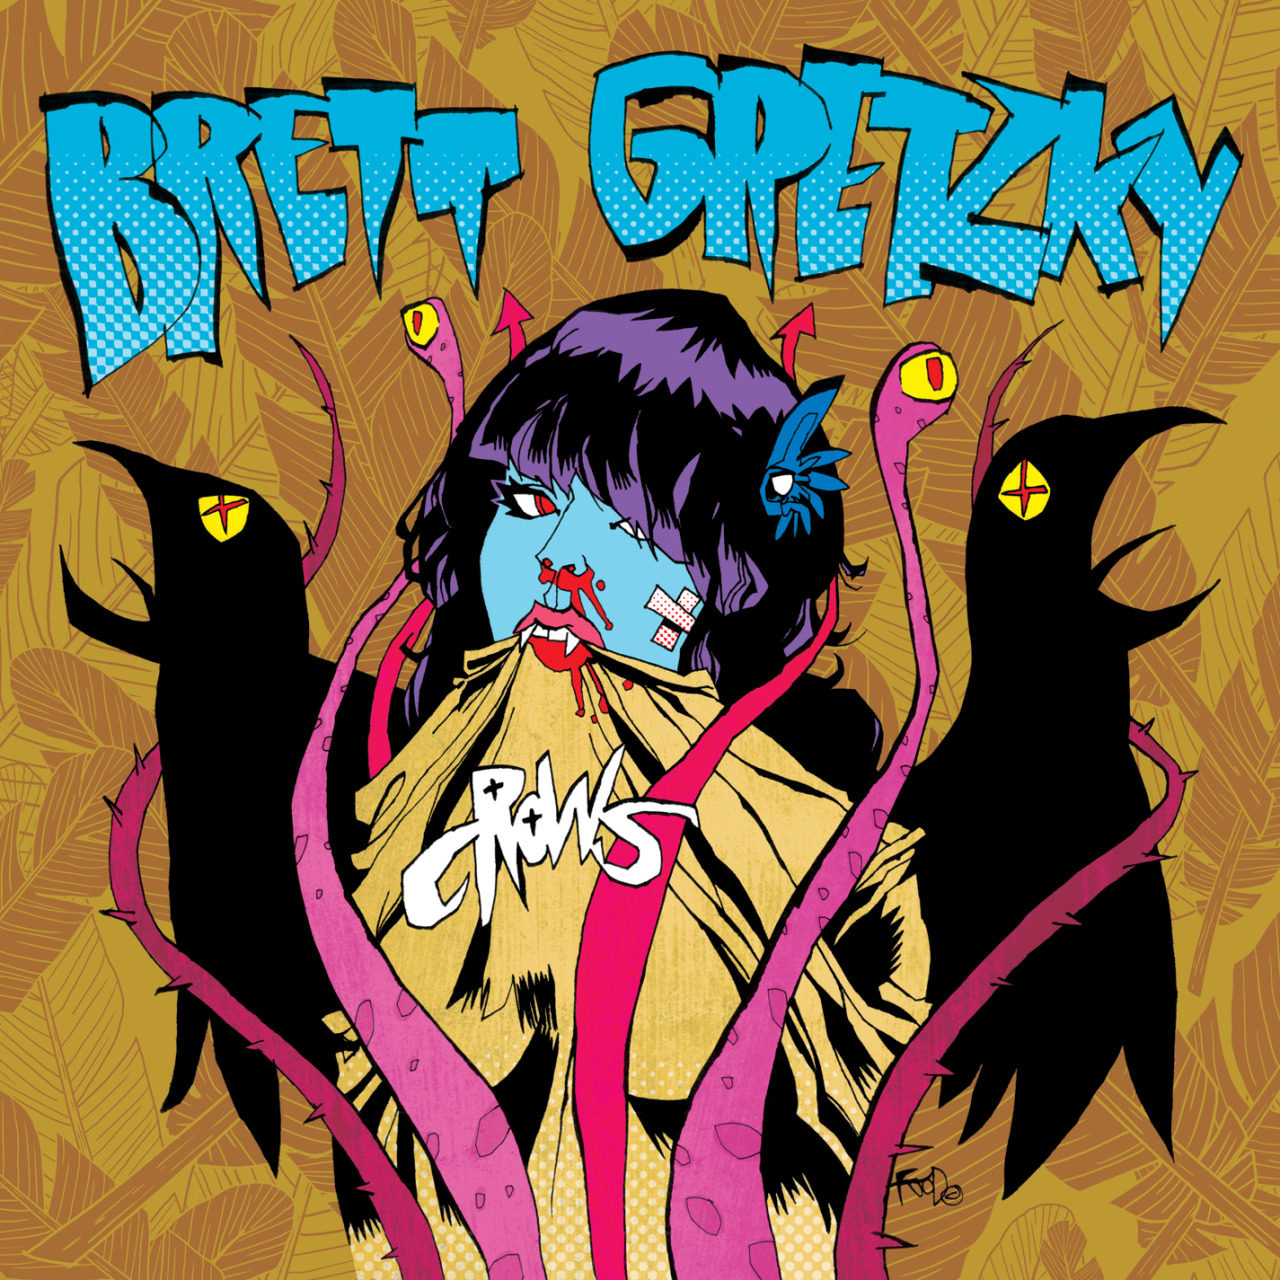 "Brett Gretzky ""Crows"" album cover Artwork by Jim Mahfood http://jimmahfood.com Colors by Steven Chunn"